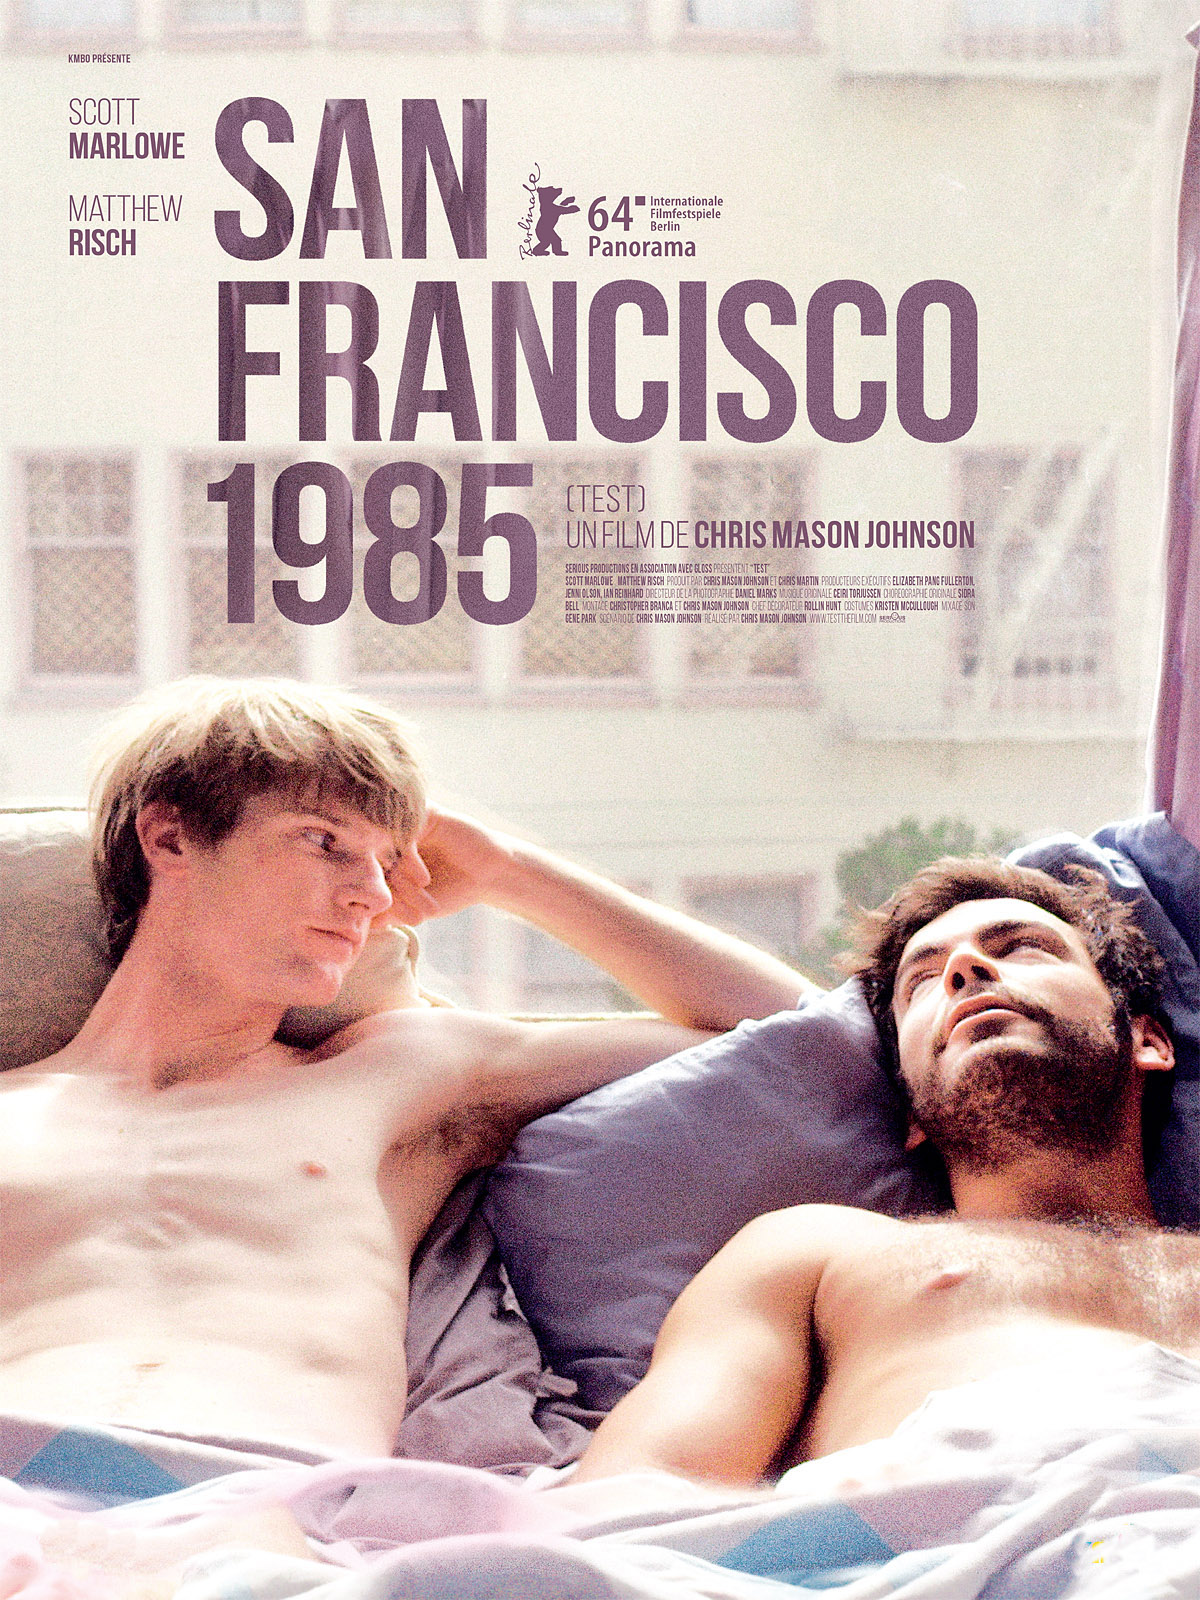 San Francisco, 1985 | Mason Johnson, Chris (Réalisateur)